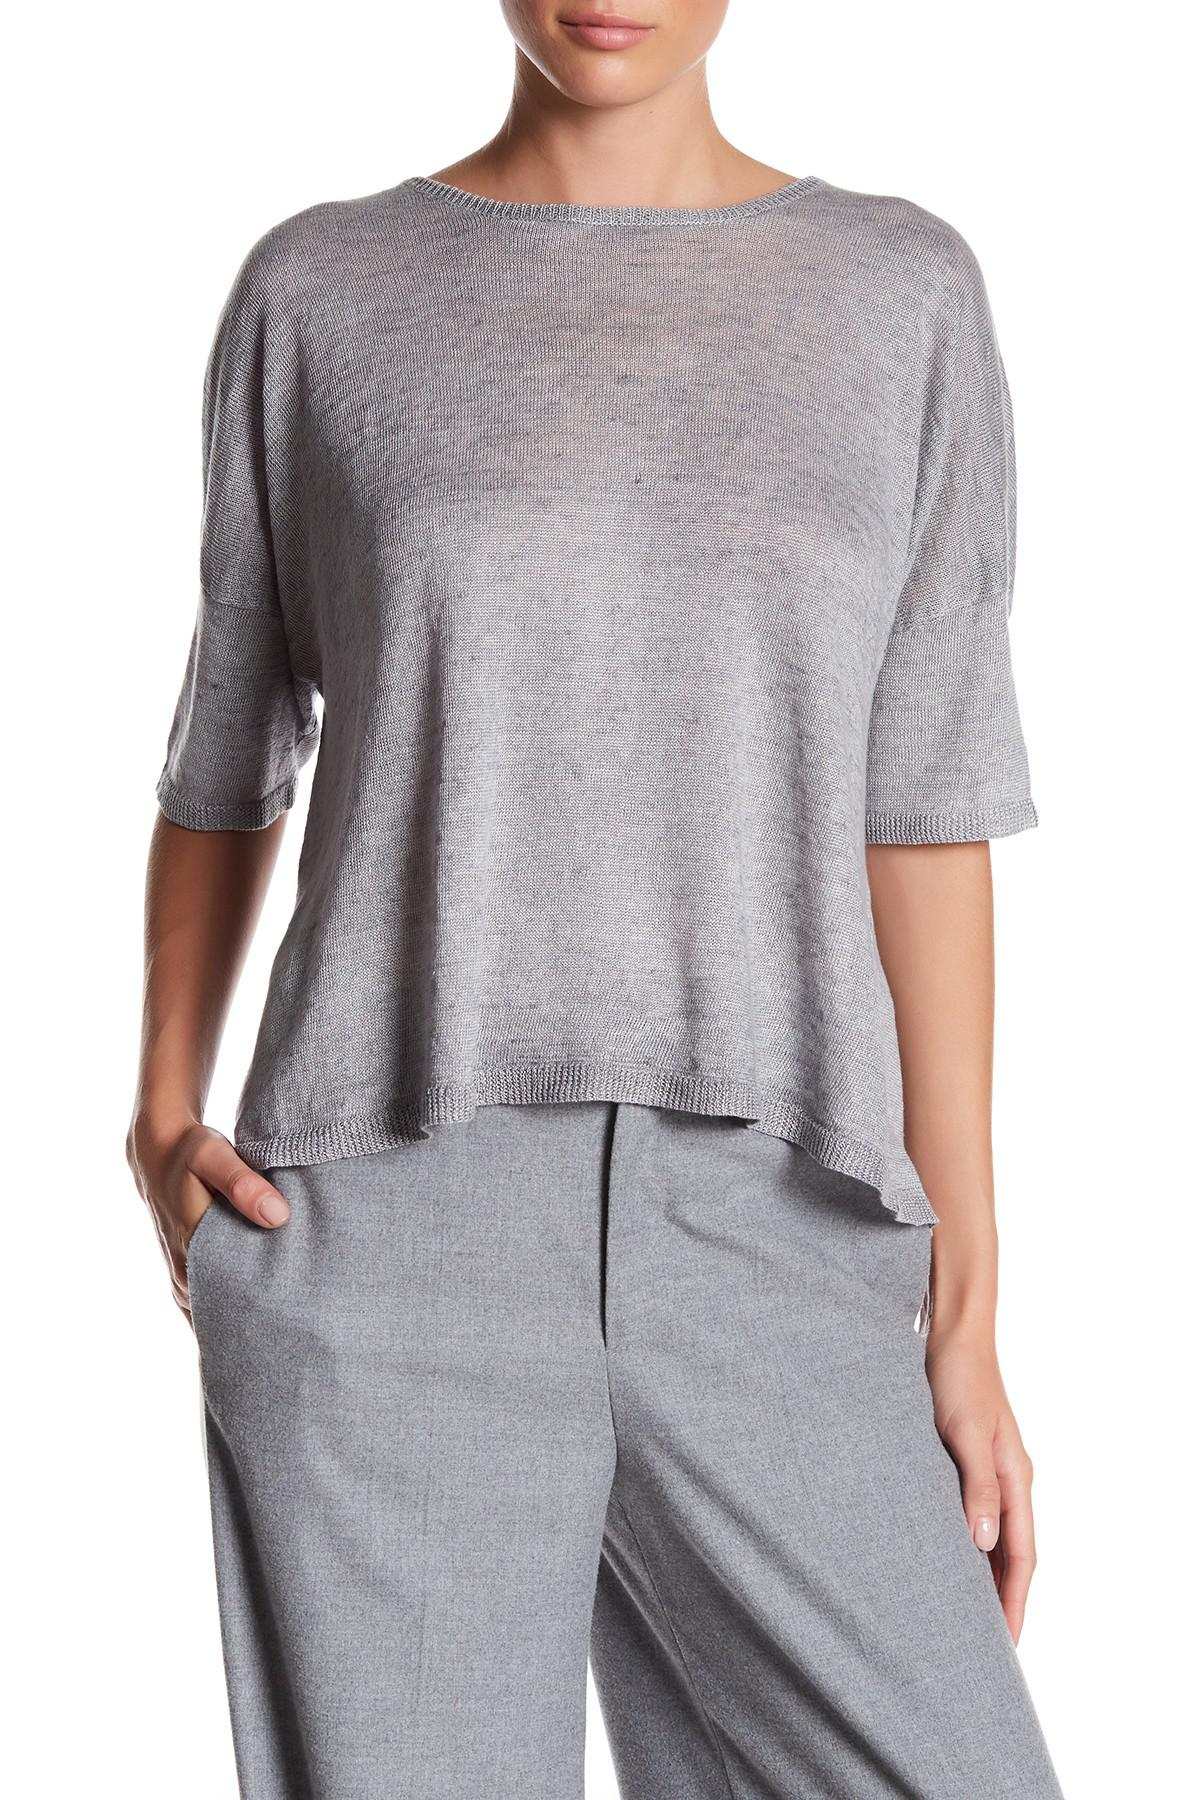 hi nordstrom top jersey on and shipping bateau rack fisher lo eileen pin by free